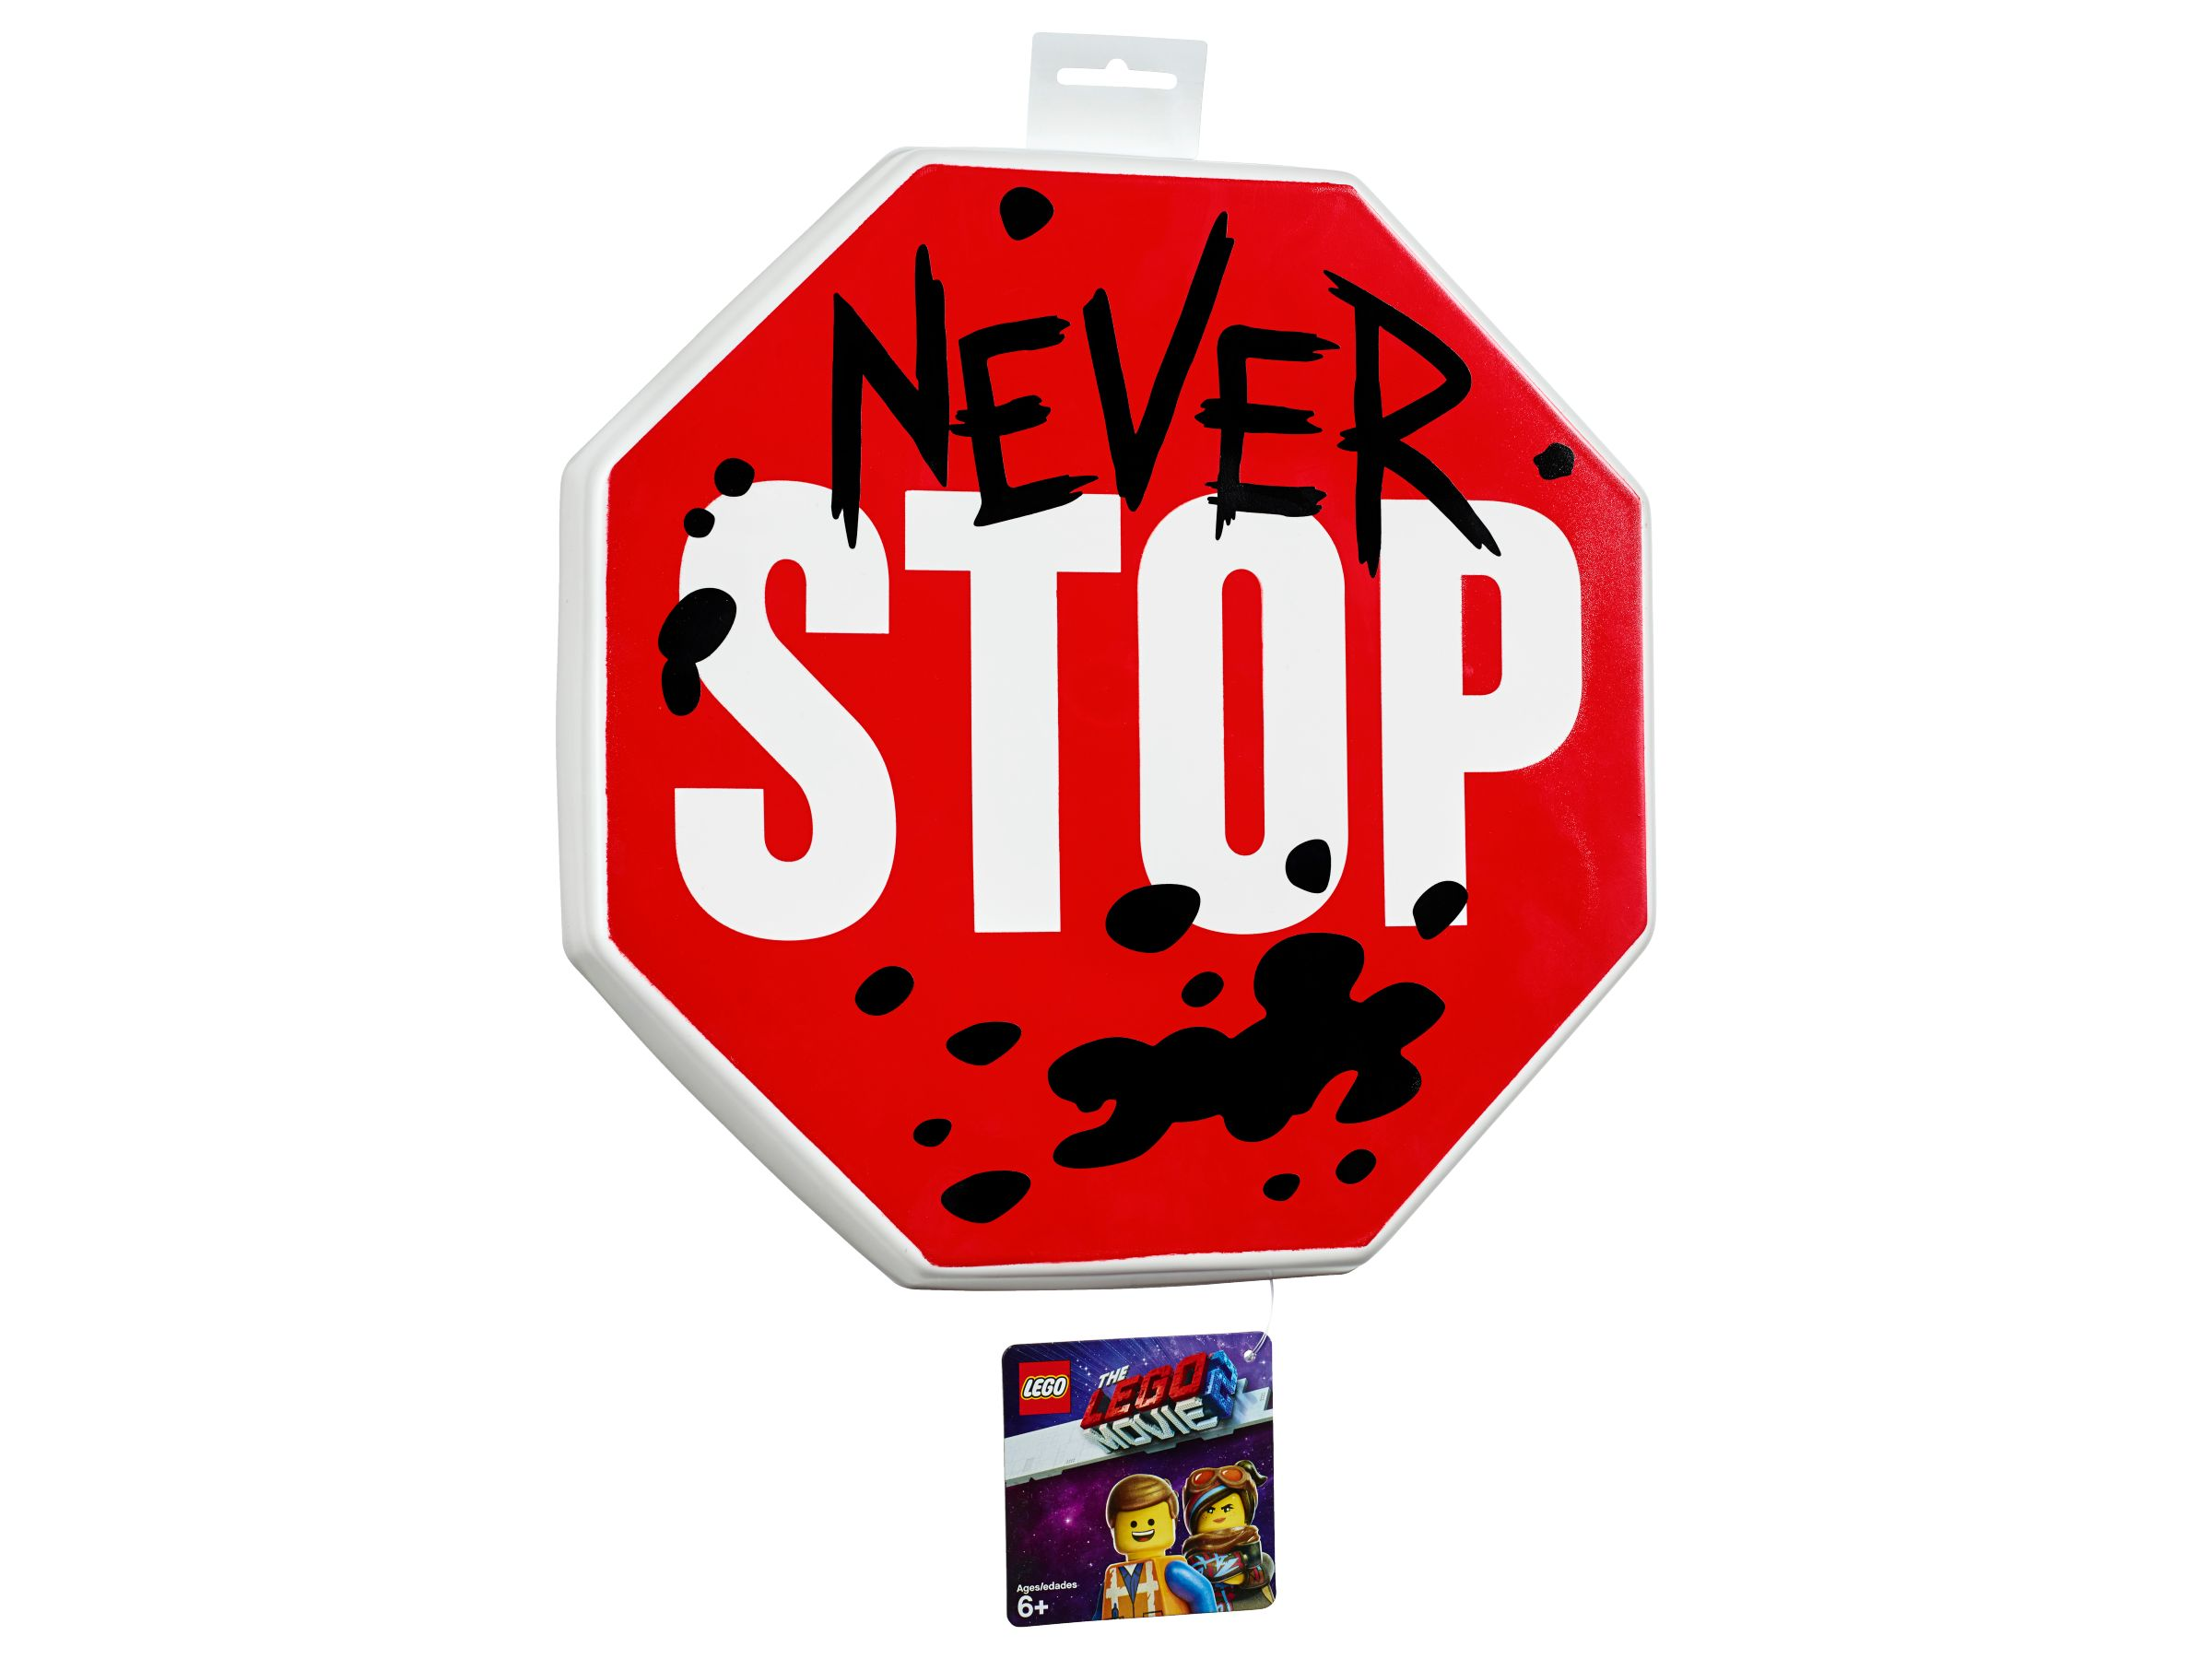 LEGO Gear 853963 THE LEGO® MOVIE 2™ Stopp-Schild LEGO_853963_alt1.jpg